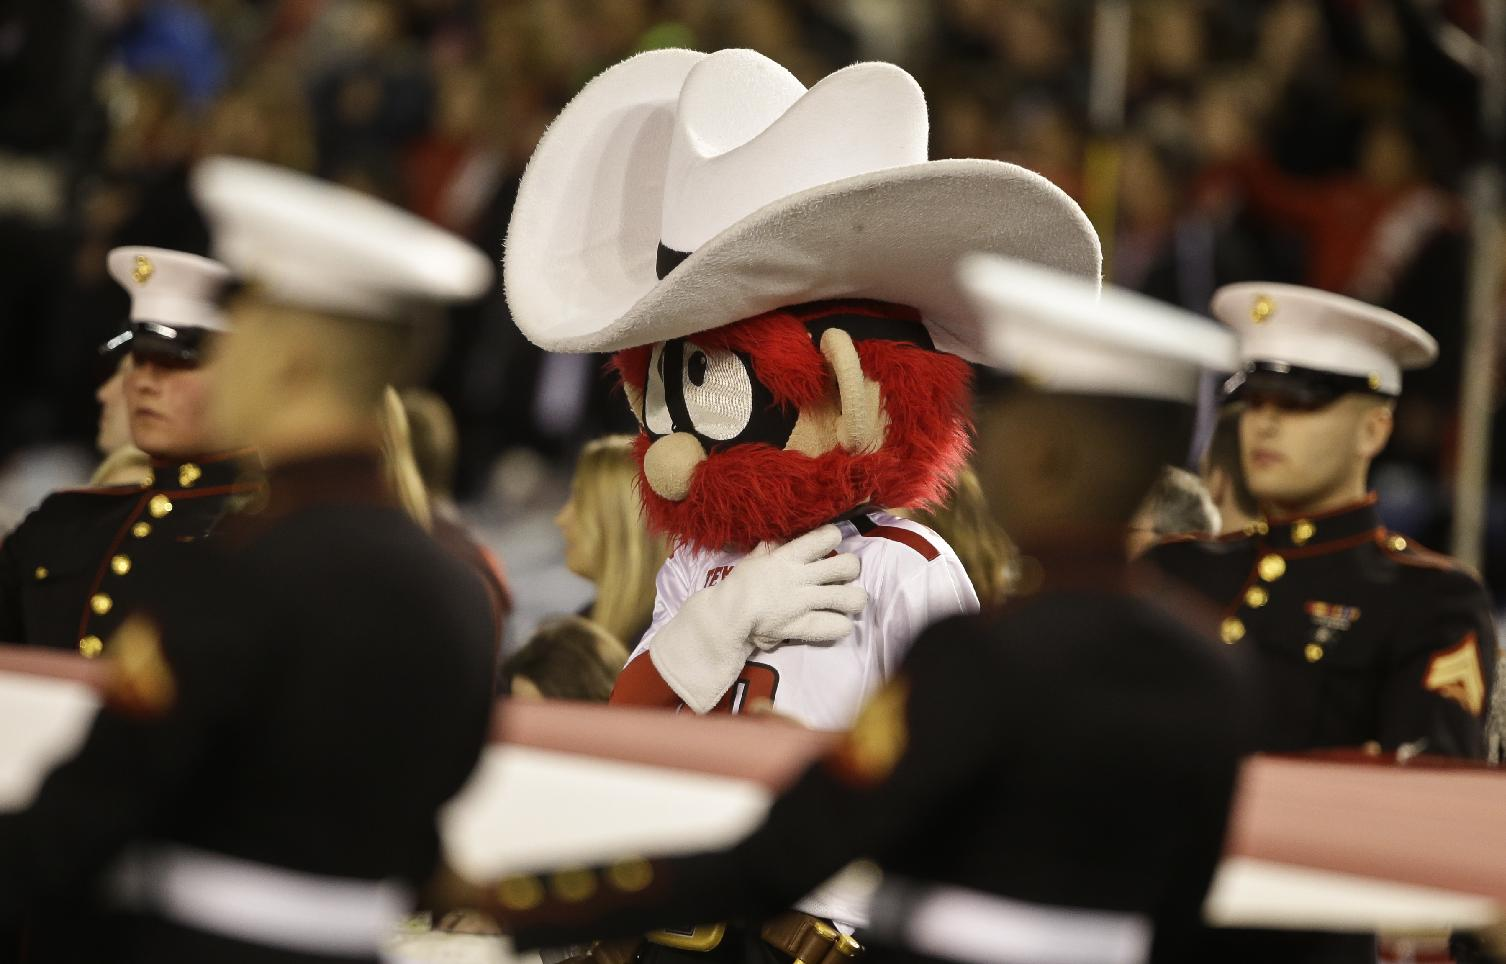 The Texas Tech Red Raider mascot stands with United States Marines during the playing of the Star Bangled Banner in pre-game activities at the Holiday Bowl NCAA college football football game Monday, Dec. 30, 2013, in San Diego